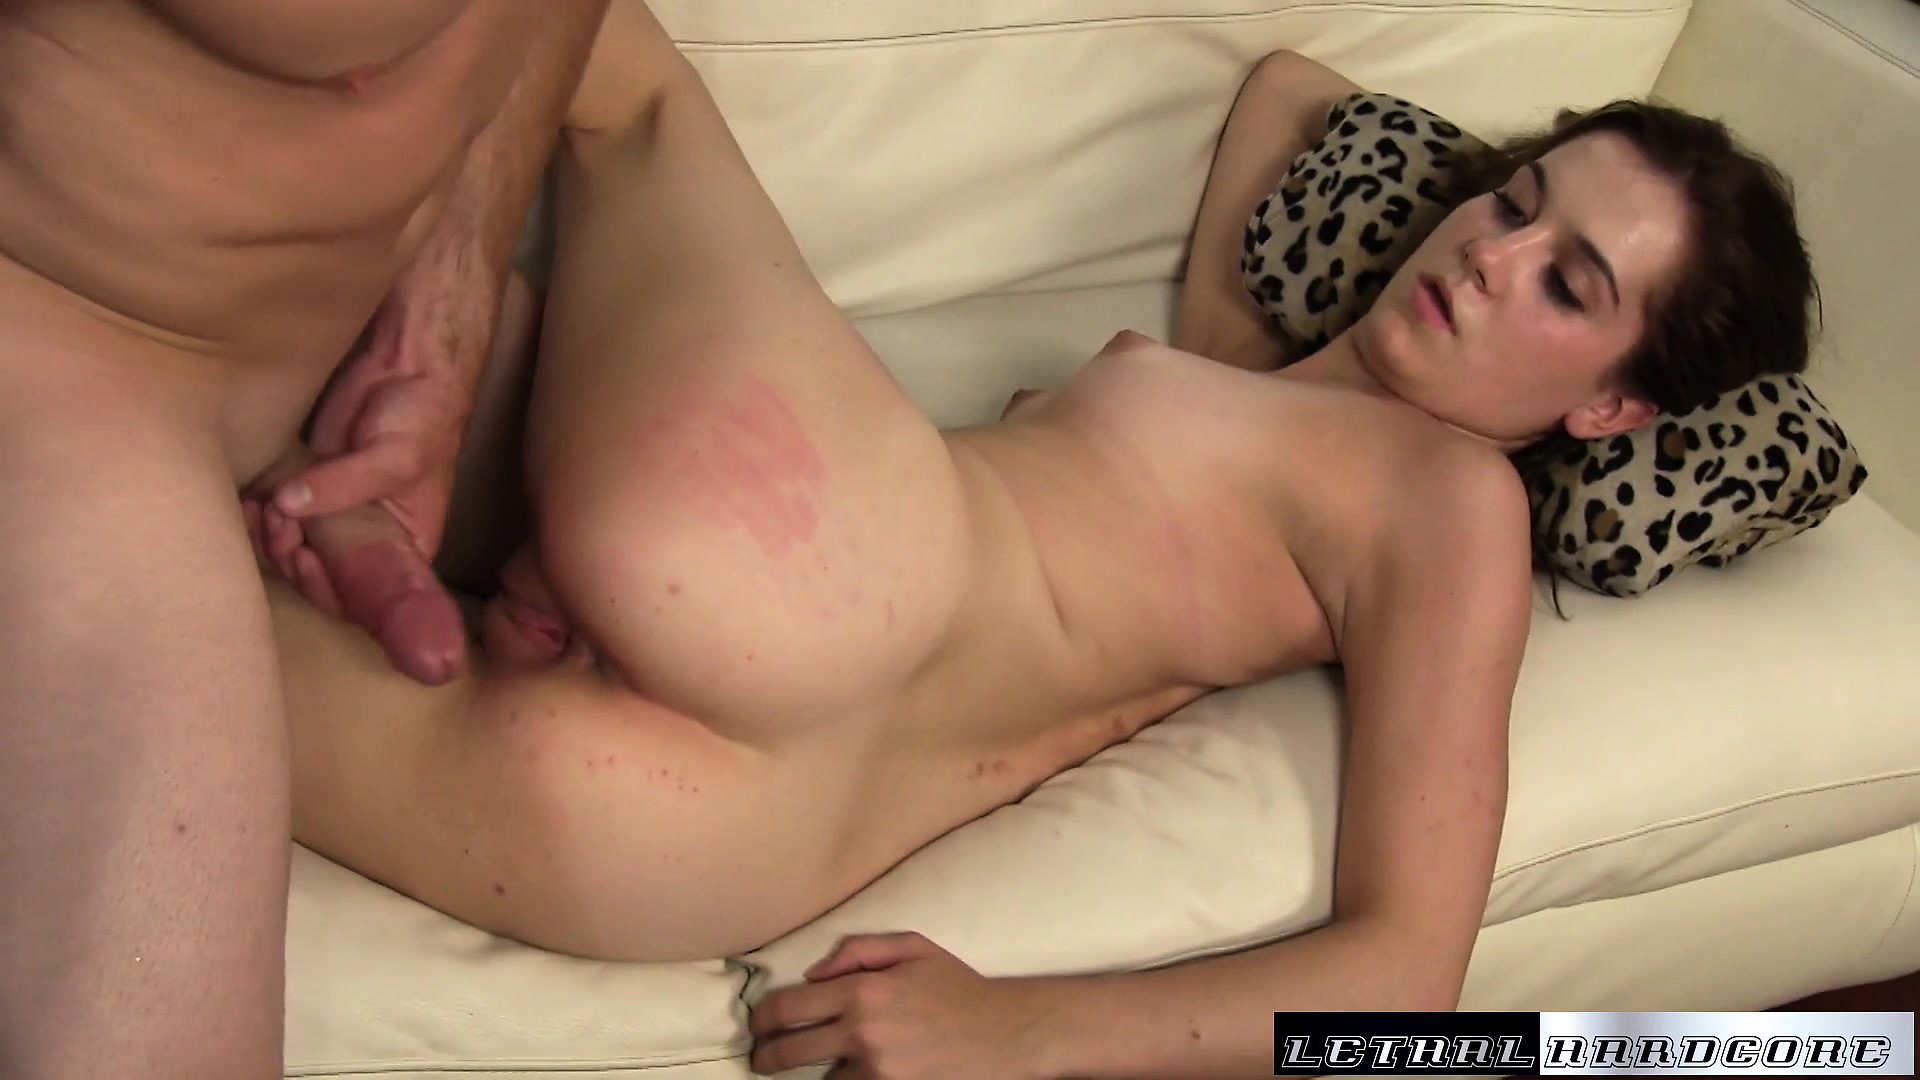 Free High Defenition Mobile Porn Video Lusty Brunette Kasey Warner Gets Her Tight Ass Spanked During Rough Sex On The Couch Hd21 Com